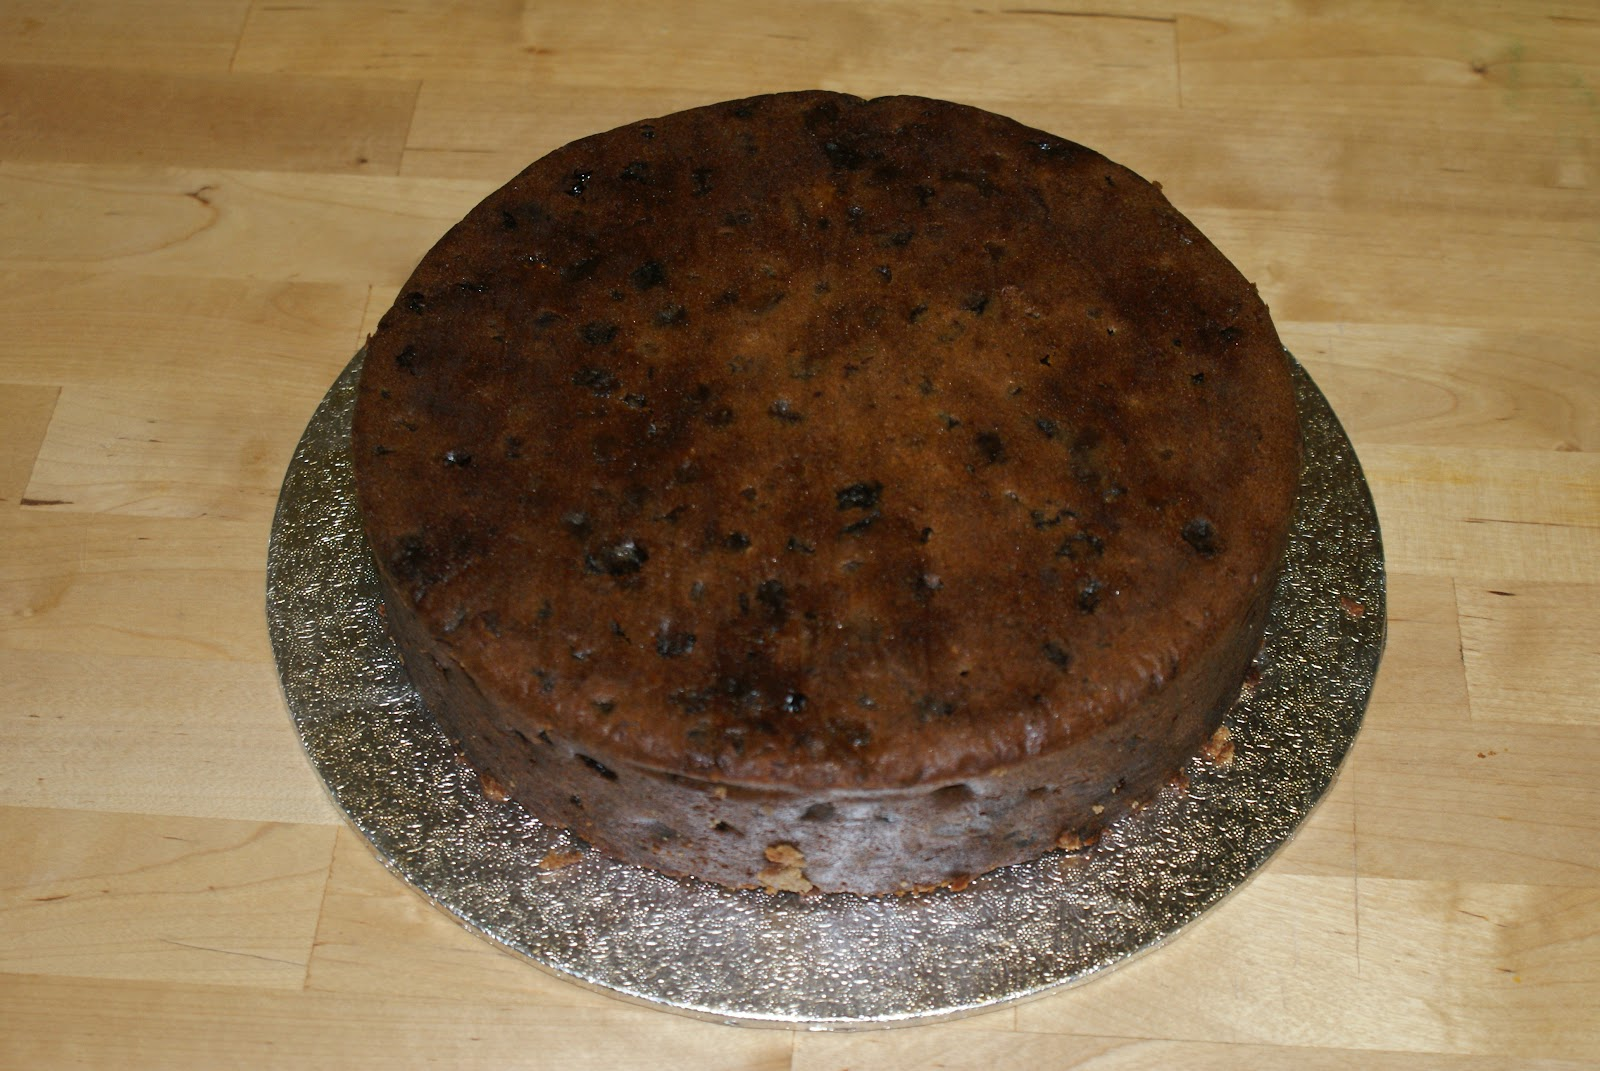 How to marzipan a christmas cake - Check That You Re Happy With Your Levelling And Adjust If Necessary A Small Sausage Of Marzipan Just Under The Cake Can Help To Level If You Don T Want To